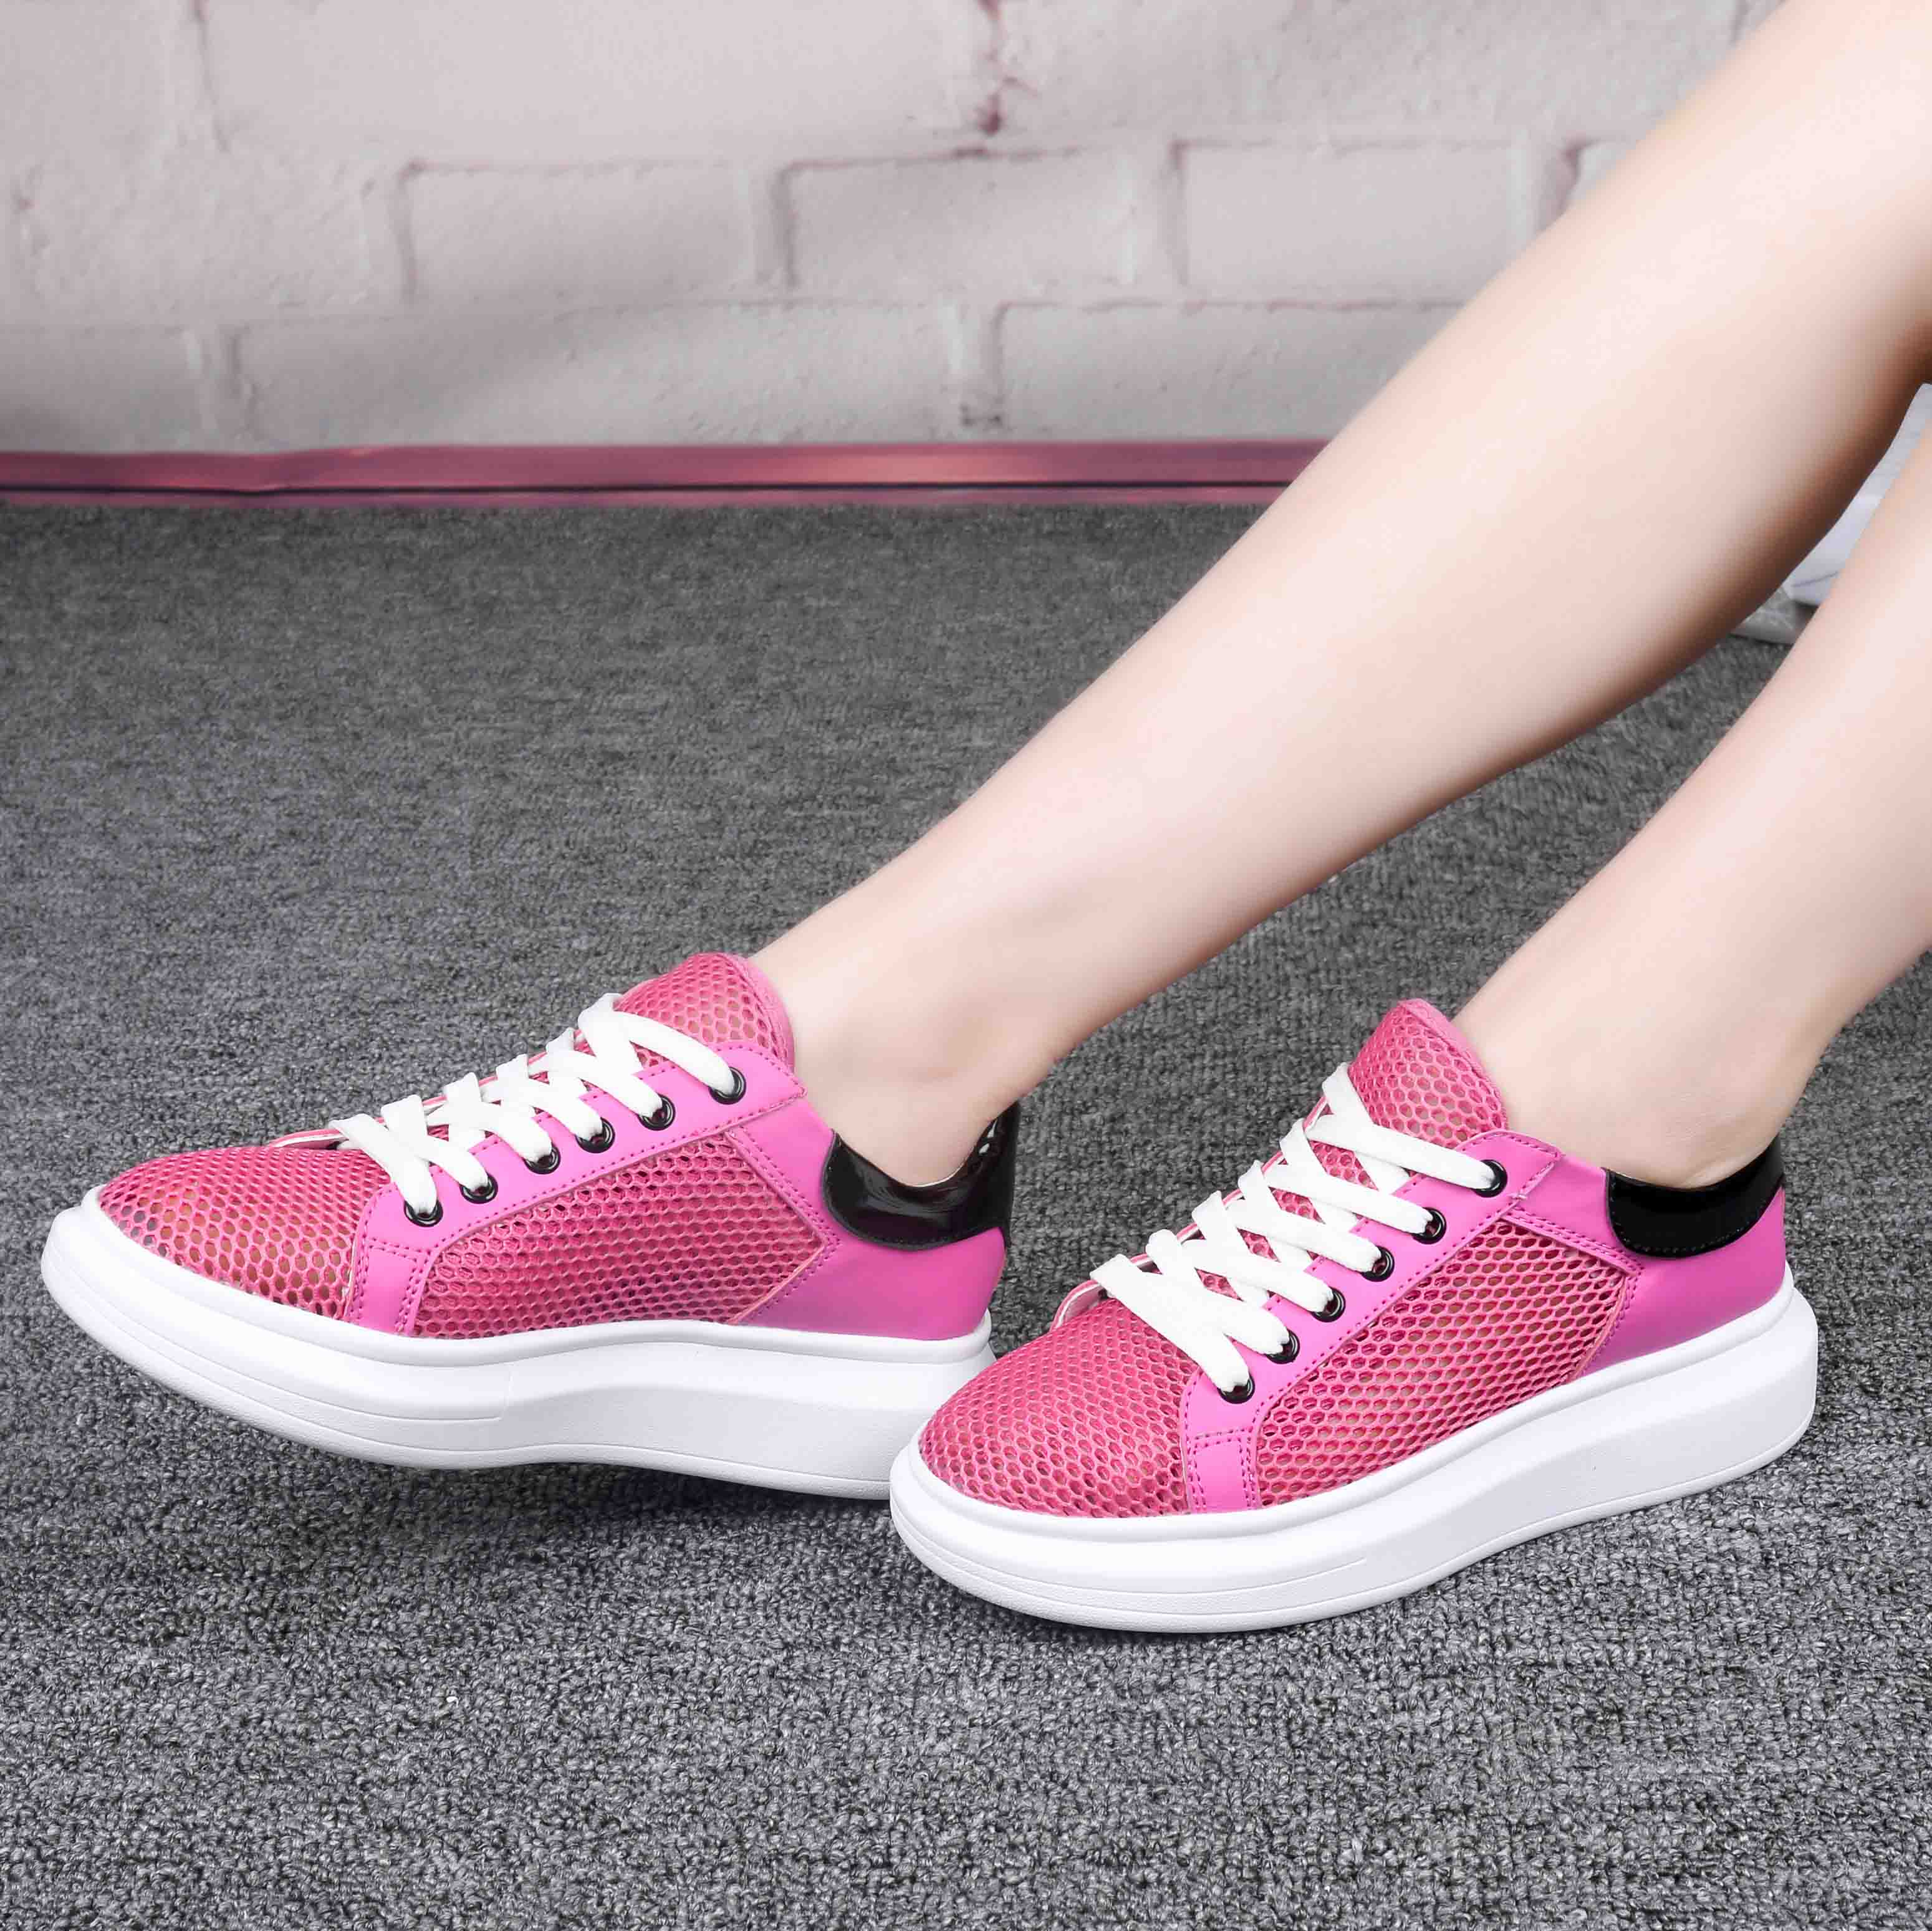 Tpxn/deep sydney 2016 spring and autumn korean version of white shoes women shoes thick crust muffin shoes sports shoes women shoes